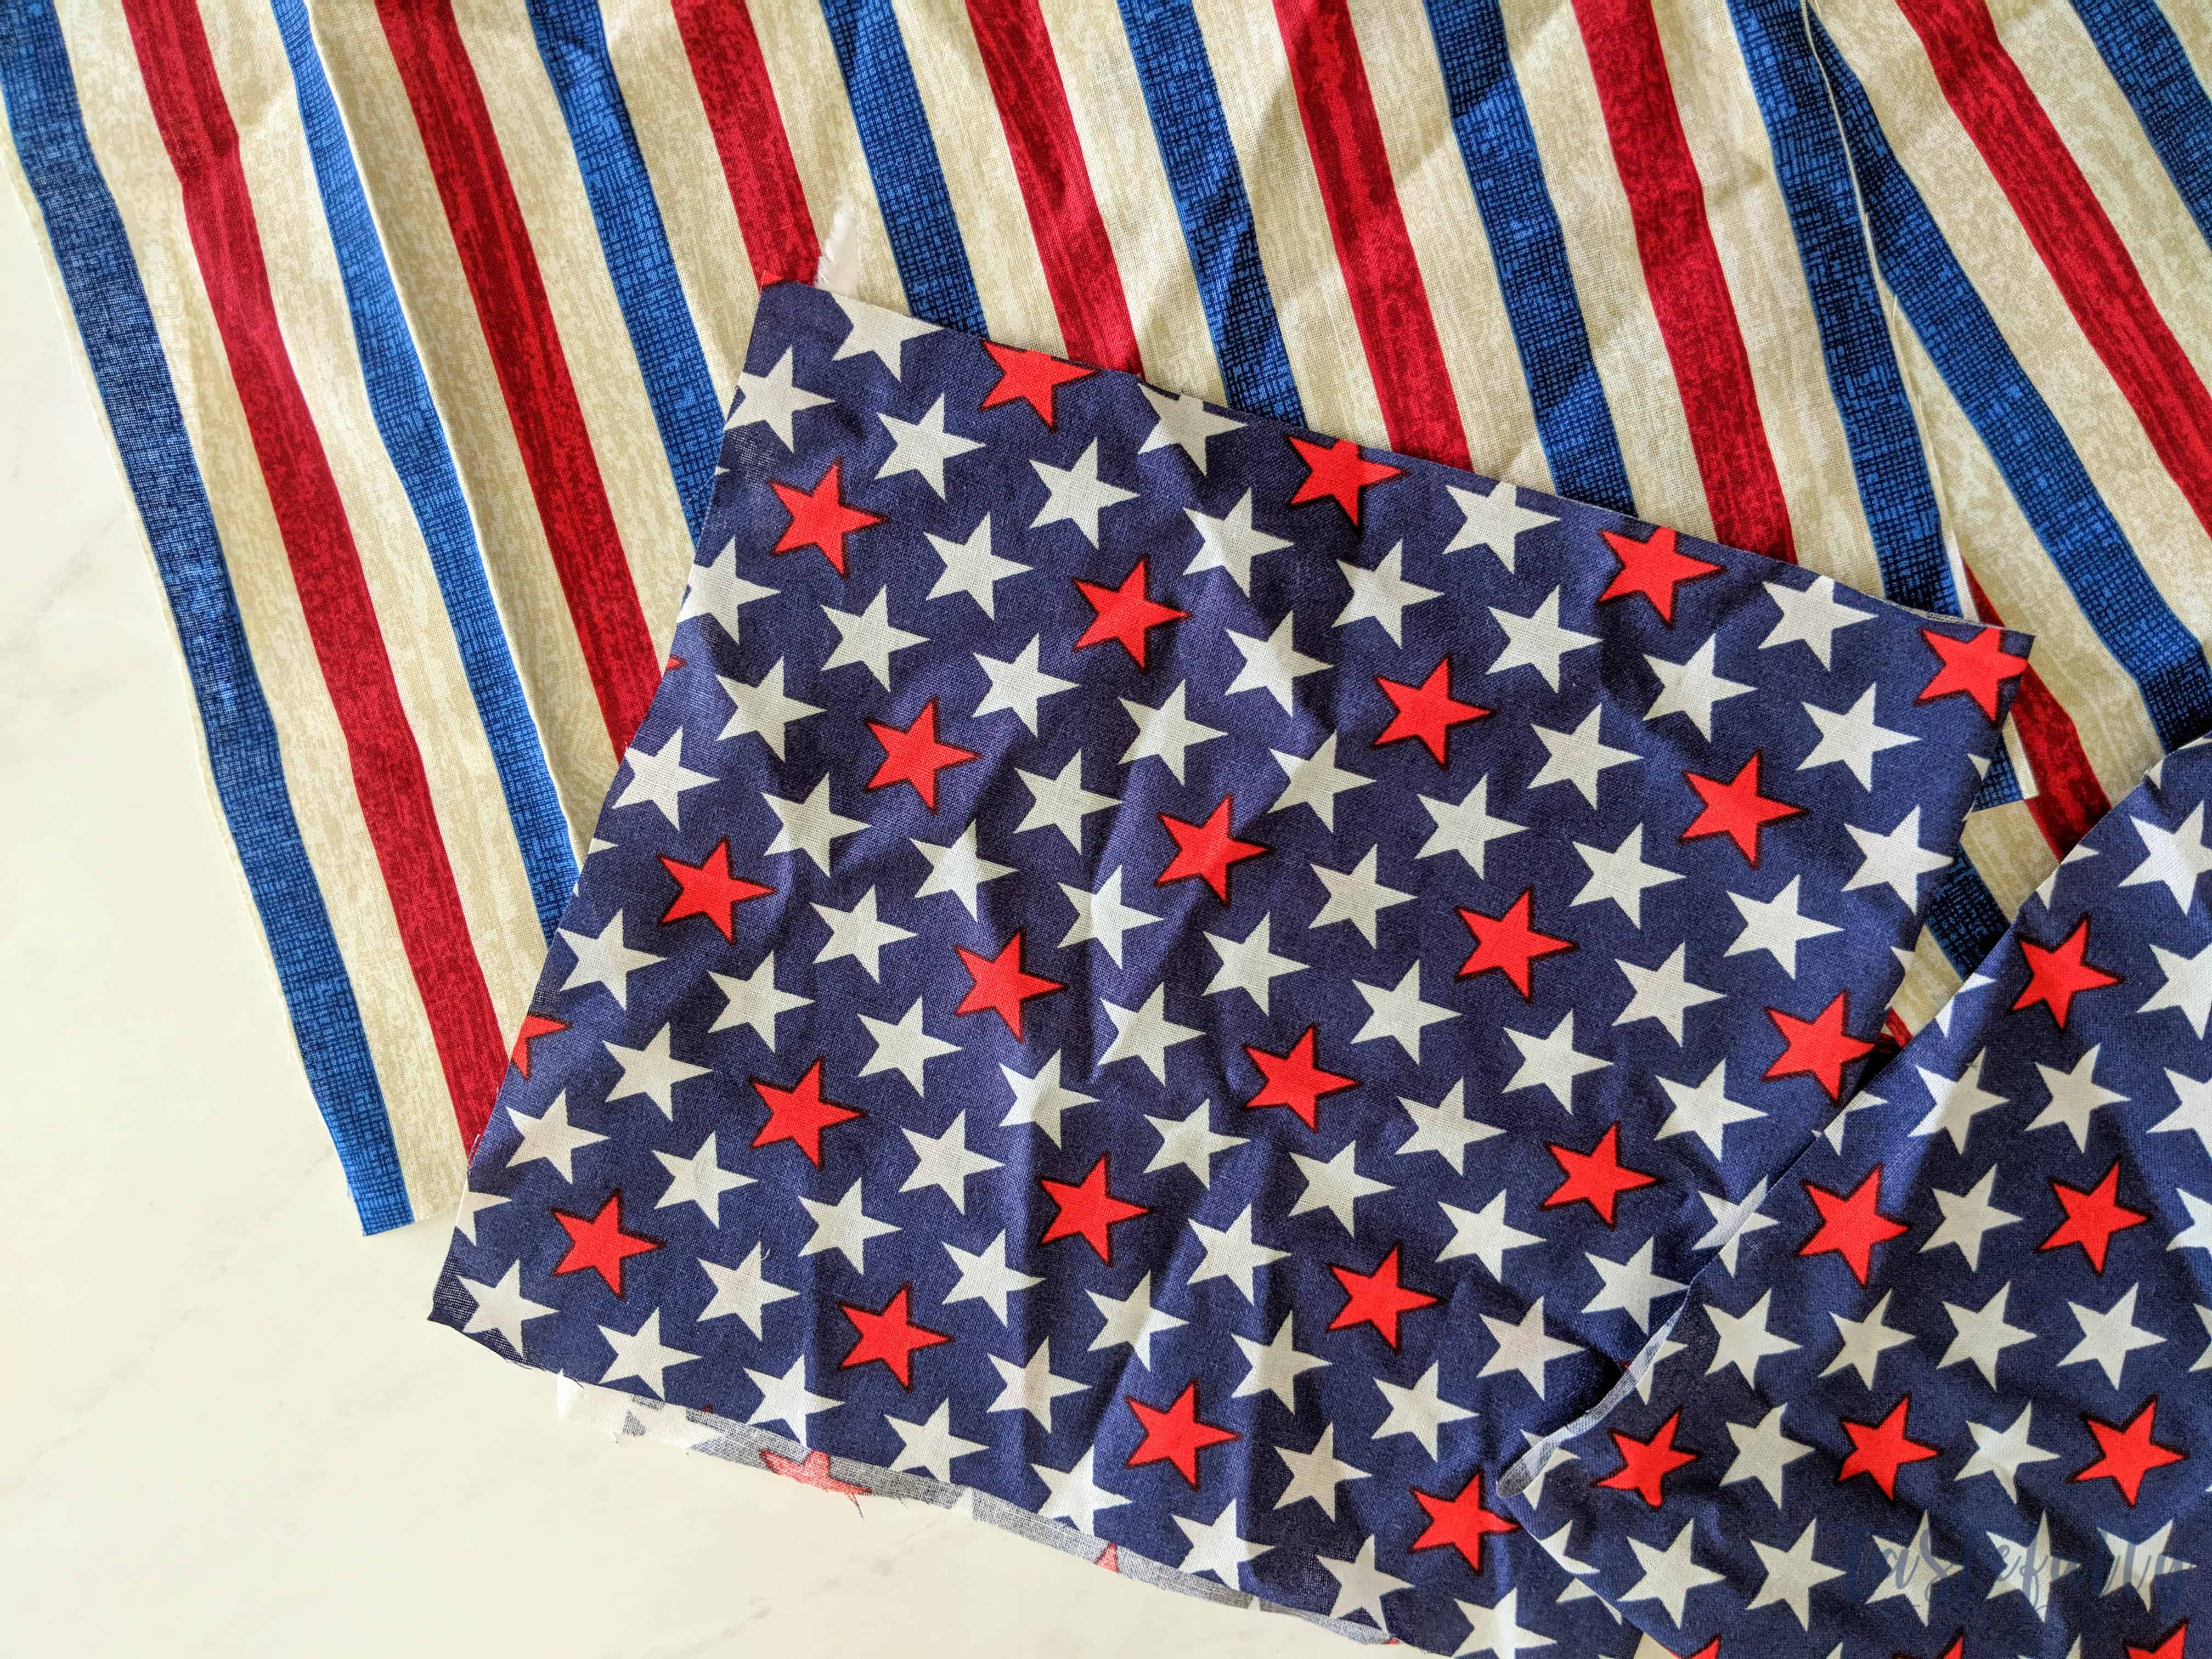 This patriotic fabric banner is easy to make with the Cricut Maker!